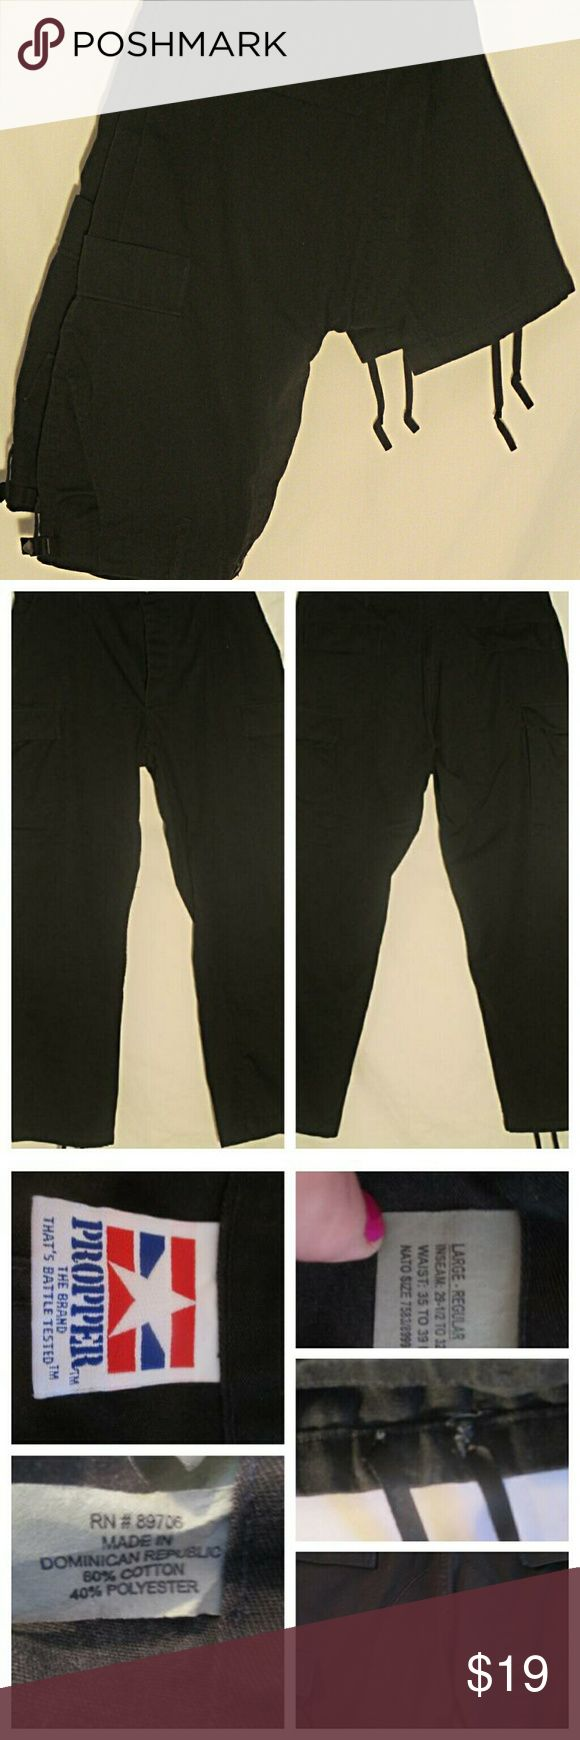 """Propper Black Tactical Pants EUC Sz LR Great looking pair of black tactical pants by Propped. Adjustable waist, button fly, reinforced butt, 6 pockets and drawstring cuffs. Stated size is LR. Measurements are 19"""" waist, 24"""" hips, 12"""" rise, 31"""" inseam, 8.5"""" cuffs, 44"""" outseam. All measurements are taken with the garment laying flat. Propper Pants Cargo"""